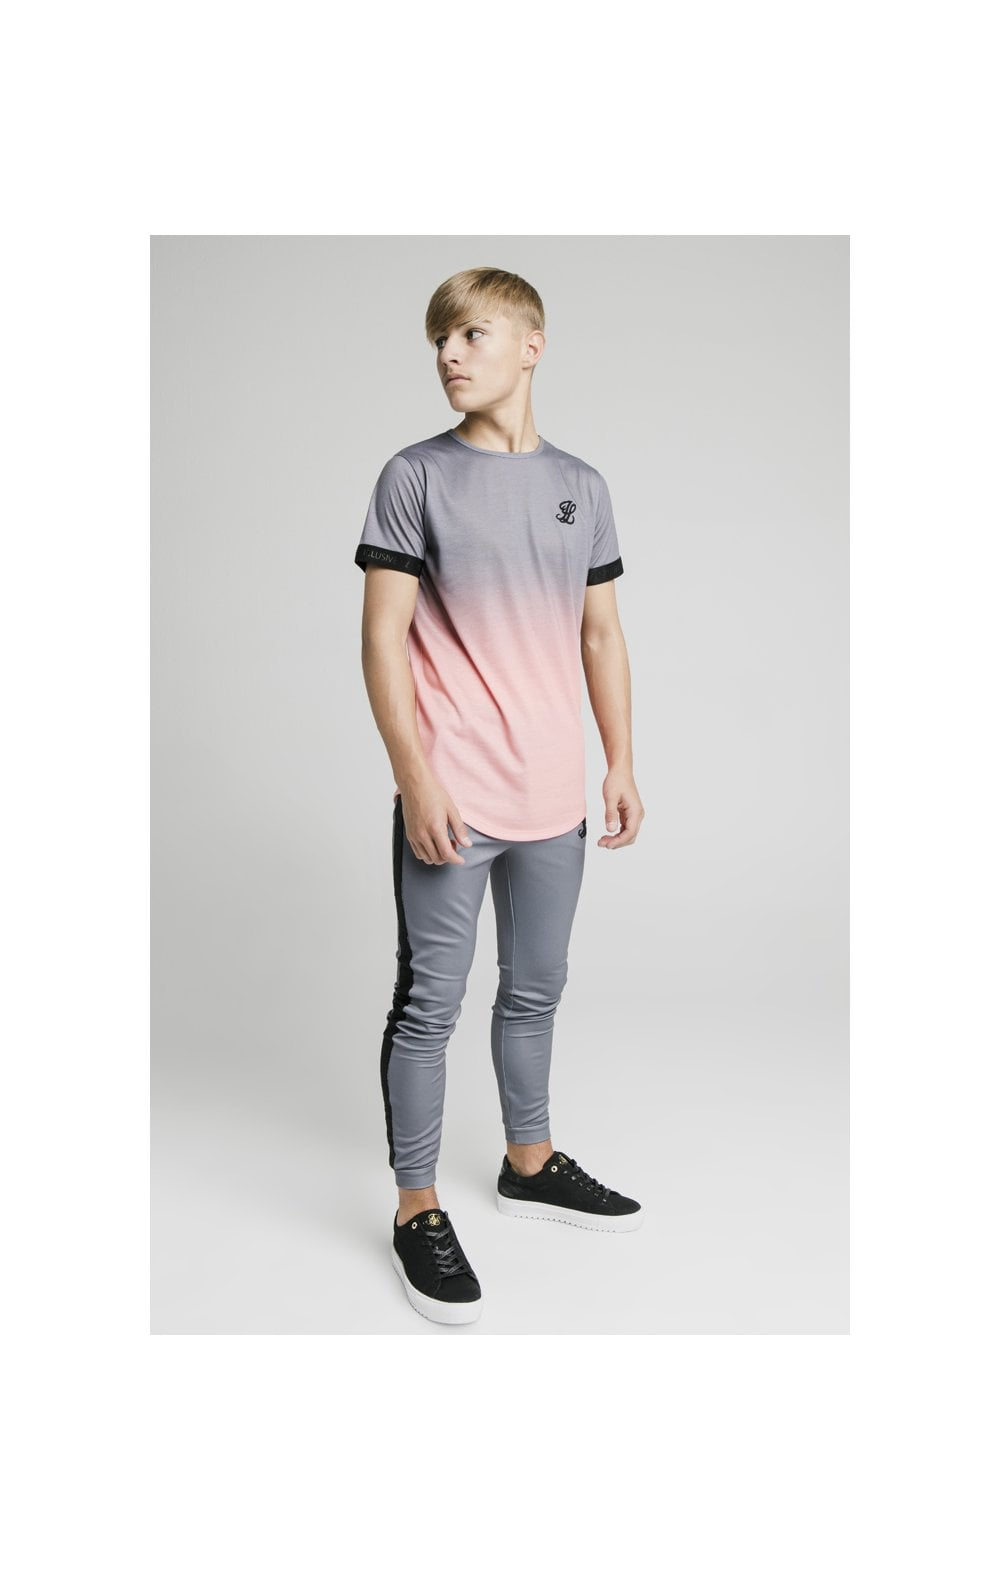 Load image into Gallery viewer, Illusive London Fade Tech Tee - Grey & Peach (4)